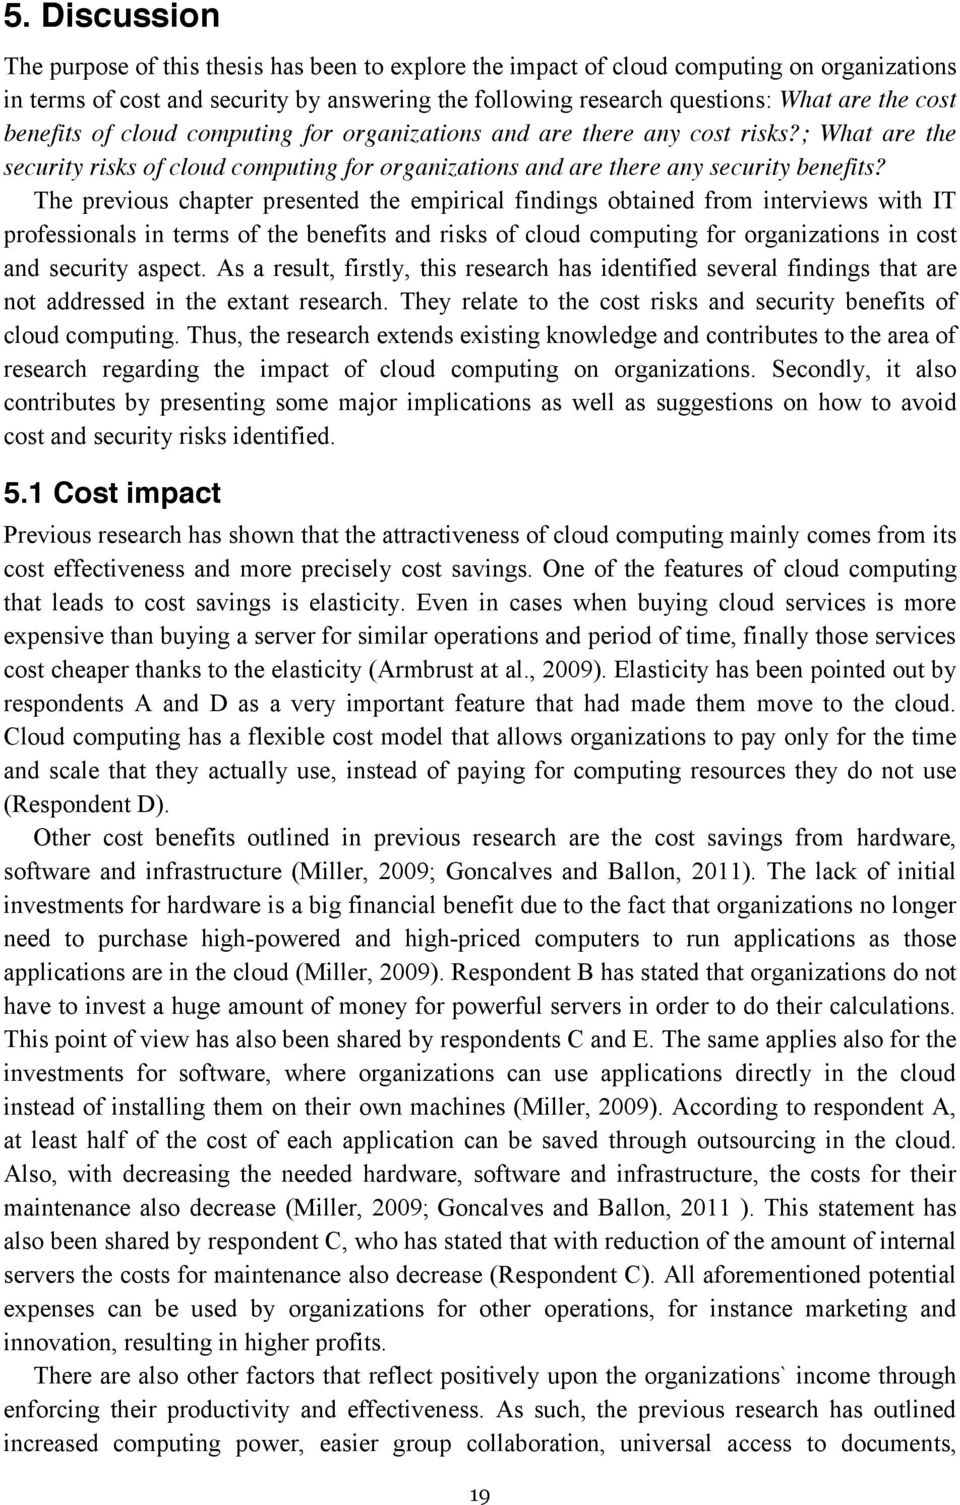 The previous chapter presented the empirical findings obtained from interviews with IT professionals in terms of the benefits and risks of cloud computing for organizations in cost and security